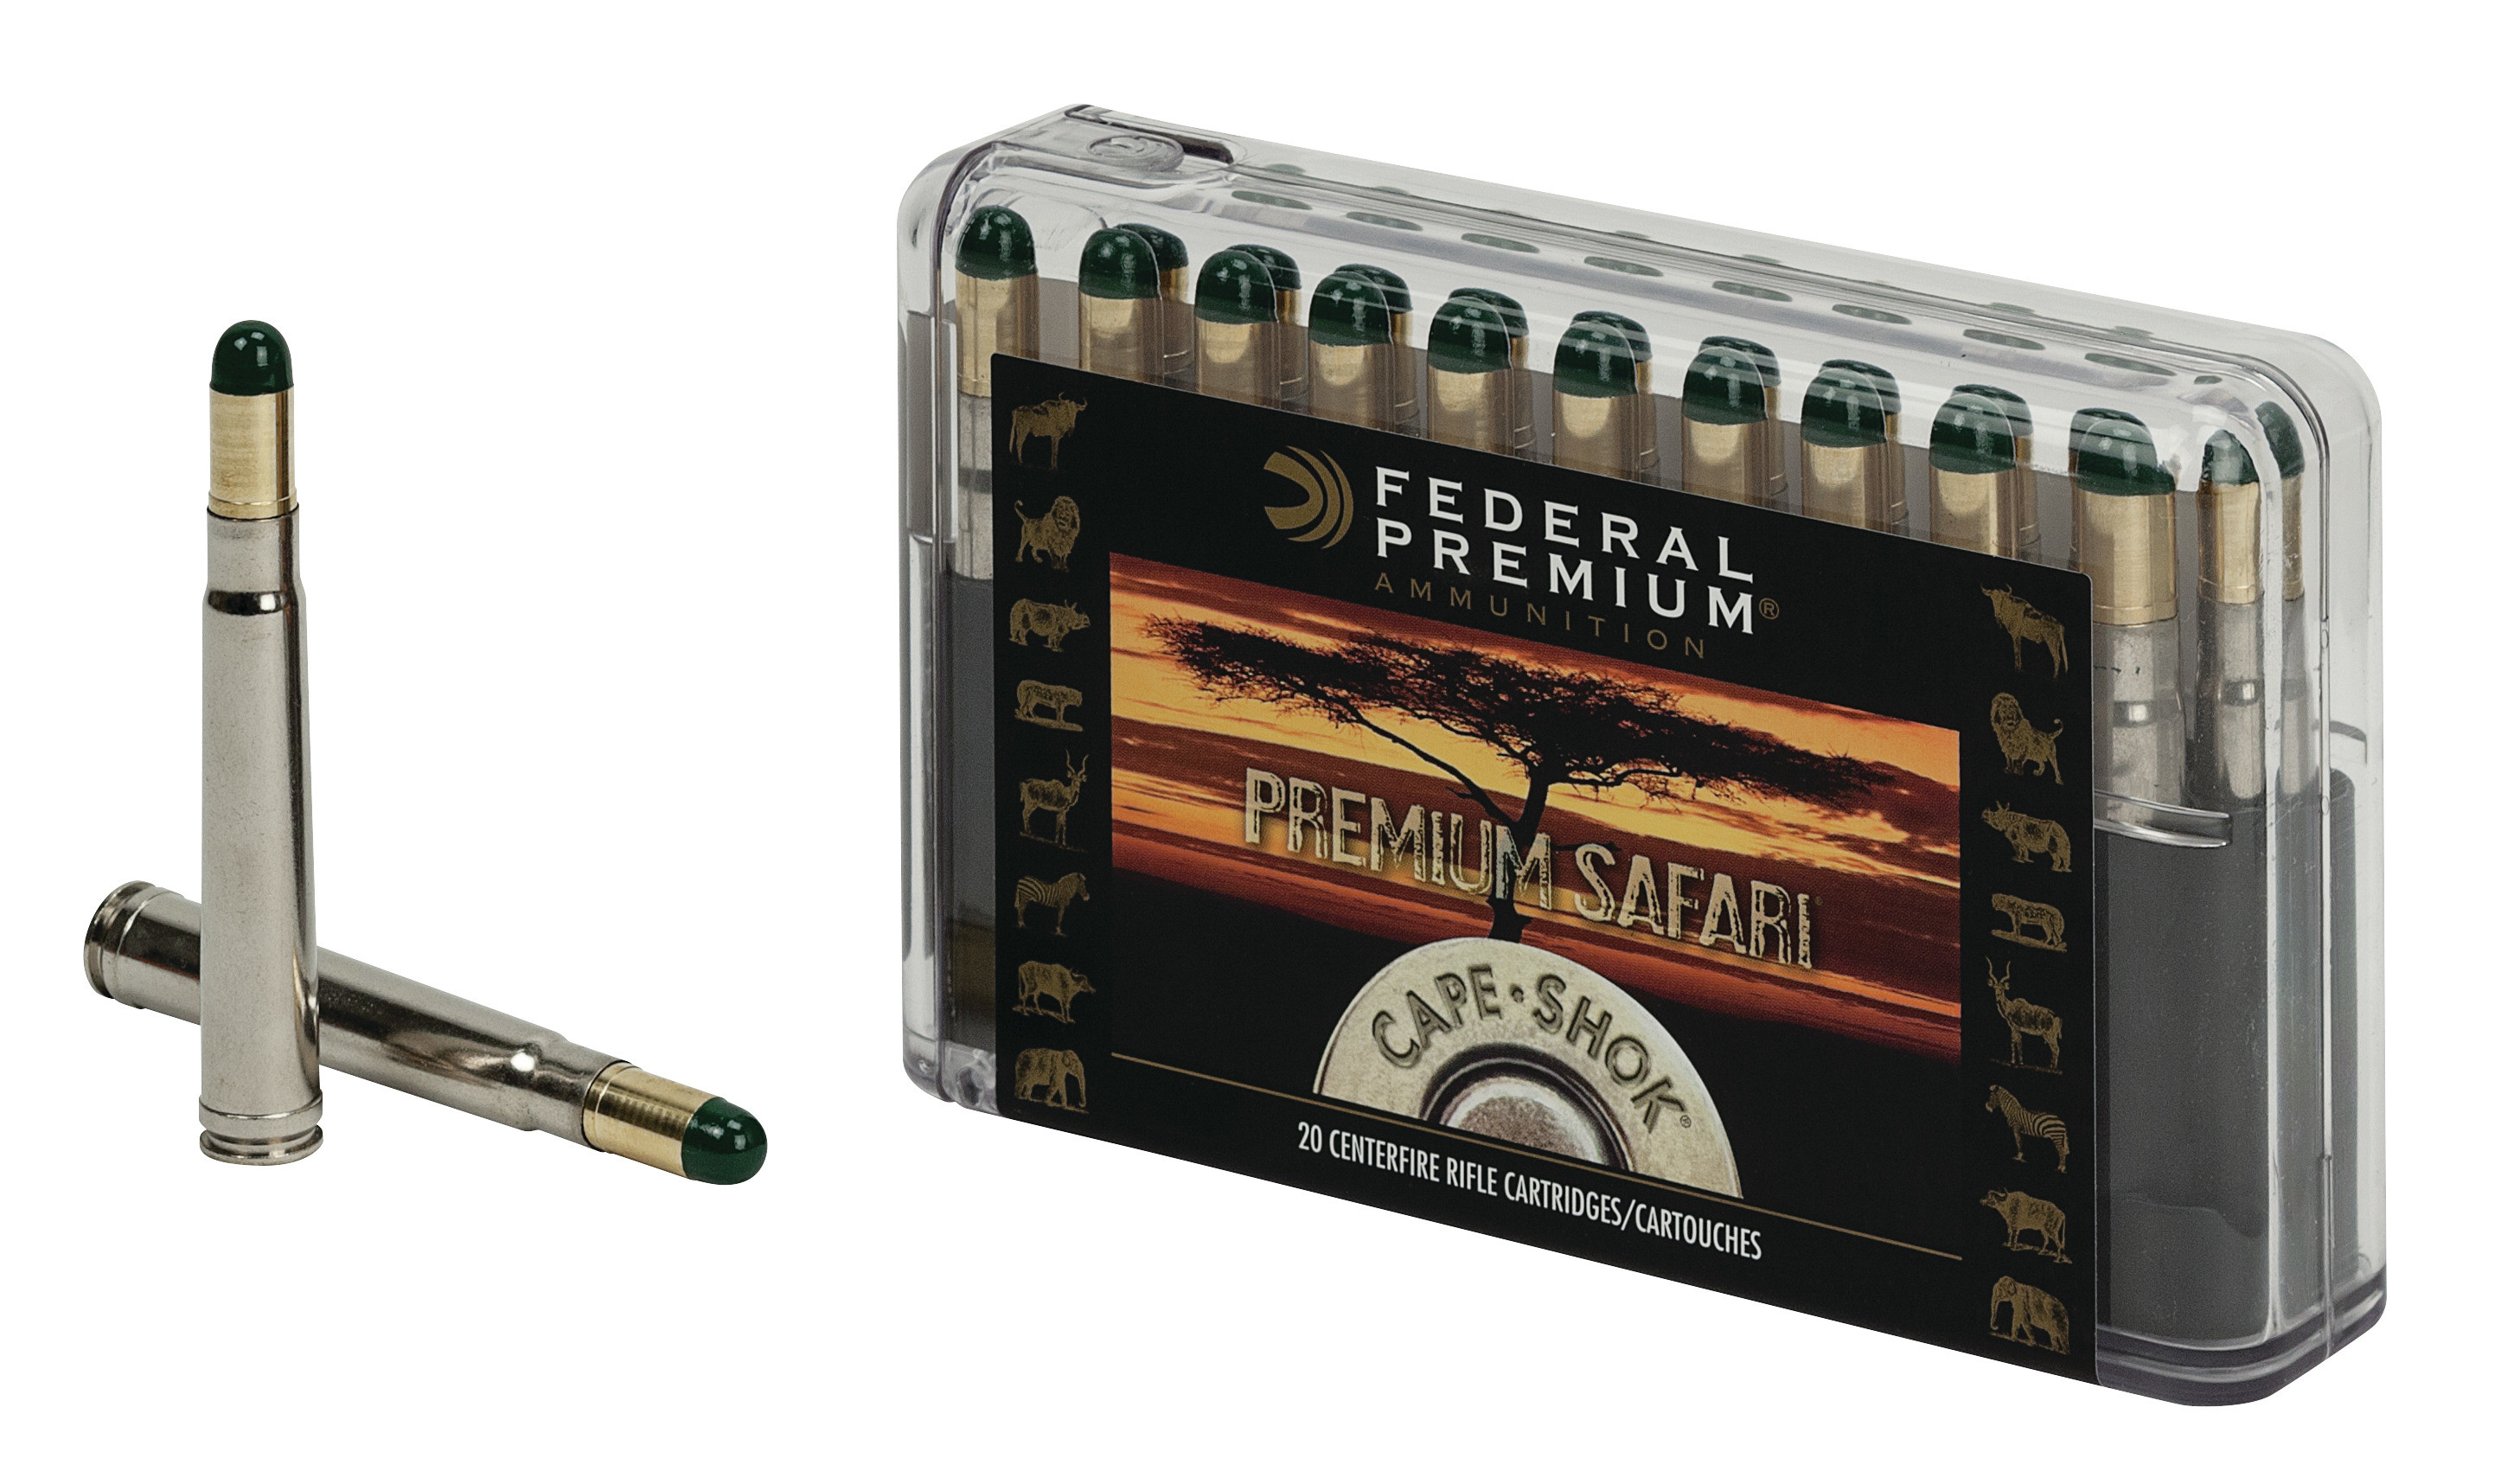 Federal Premium Cape-Shok Ammunition 458 Winchester Magnum 500GR Woodleigh Hydro Solid Round Nose Per 20